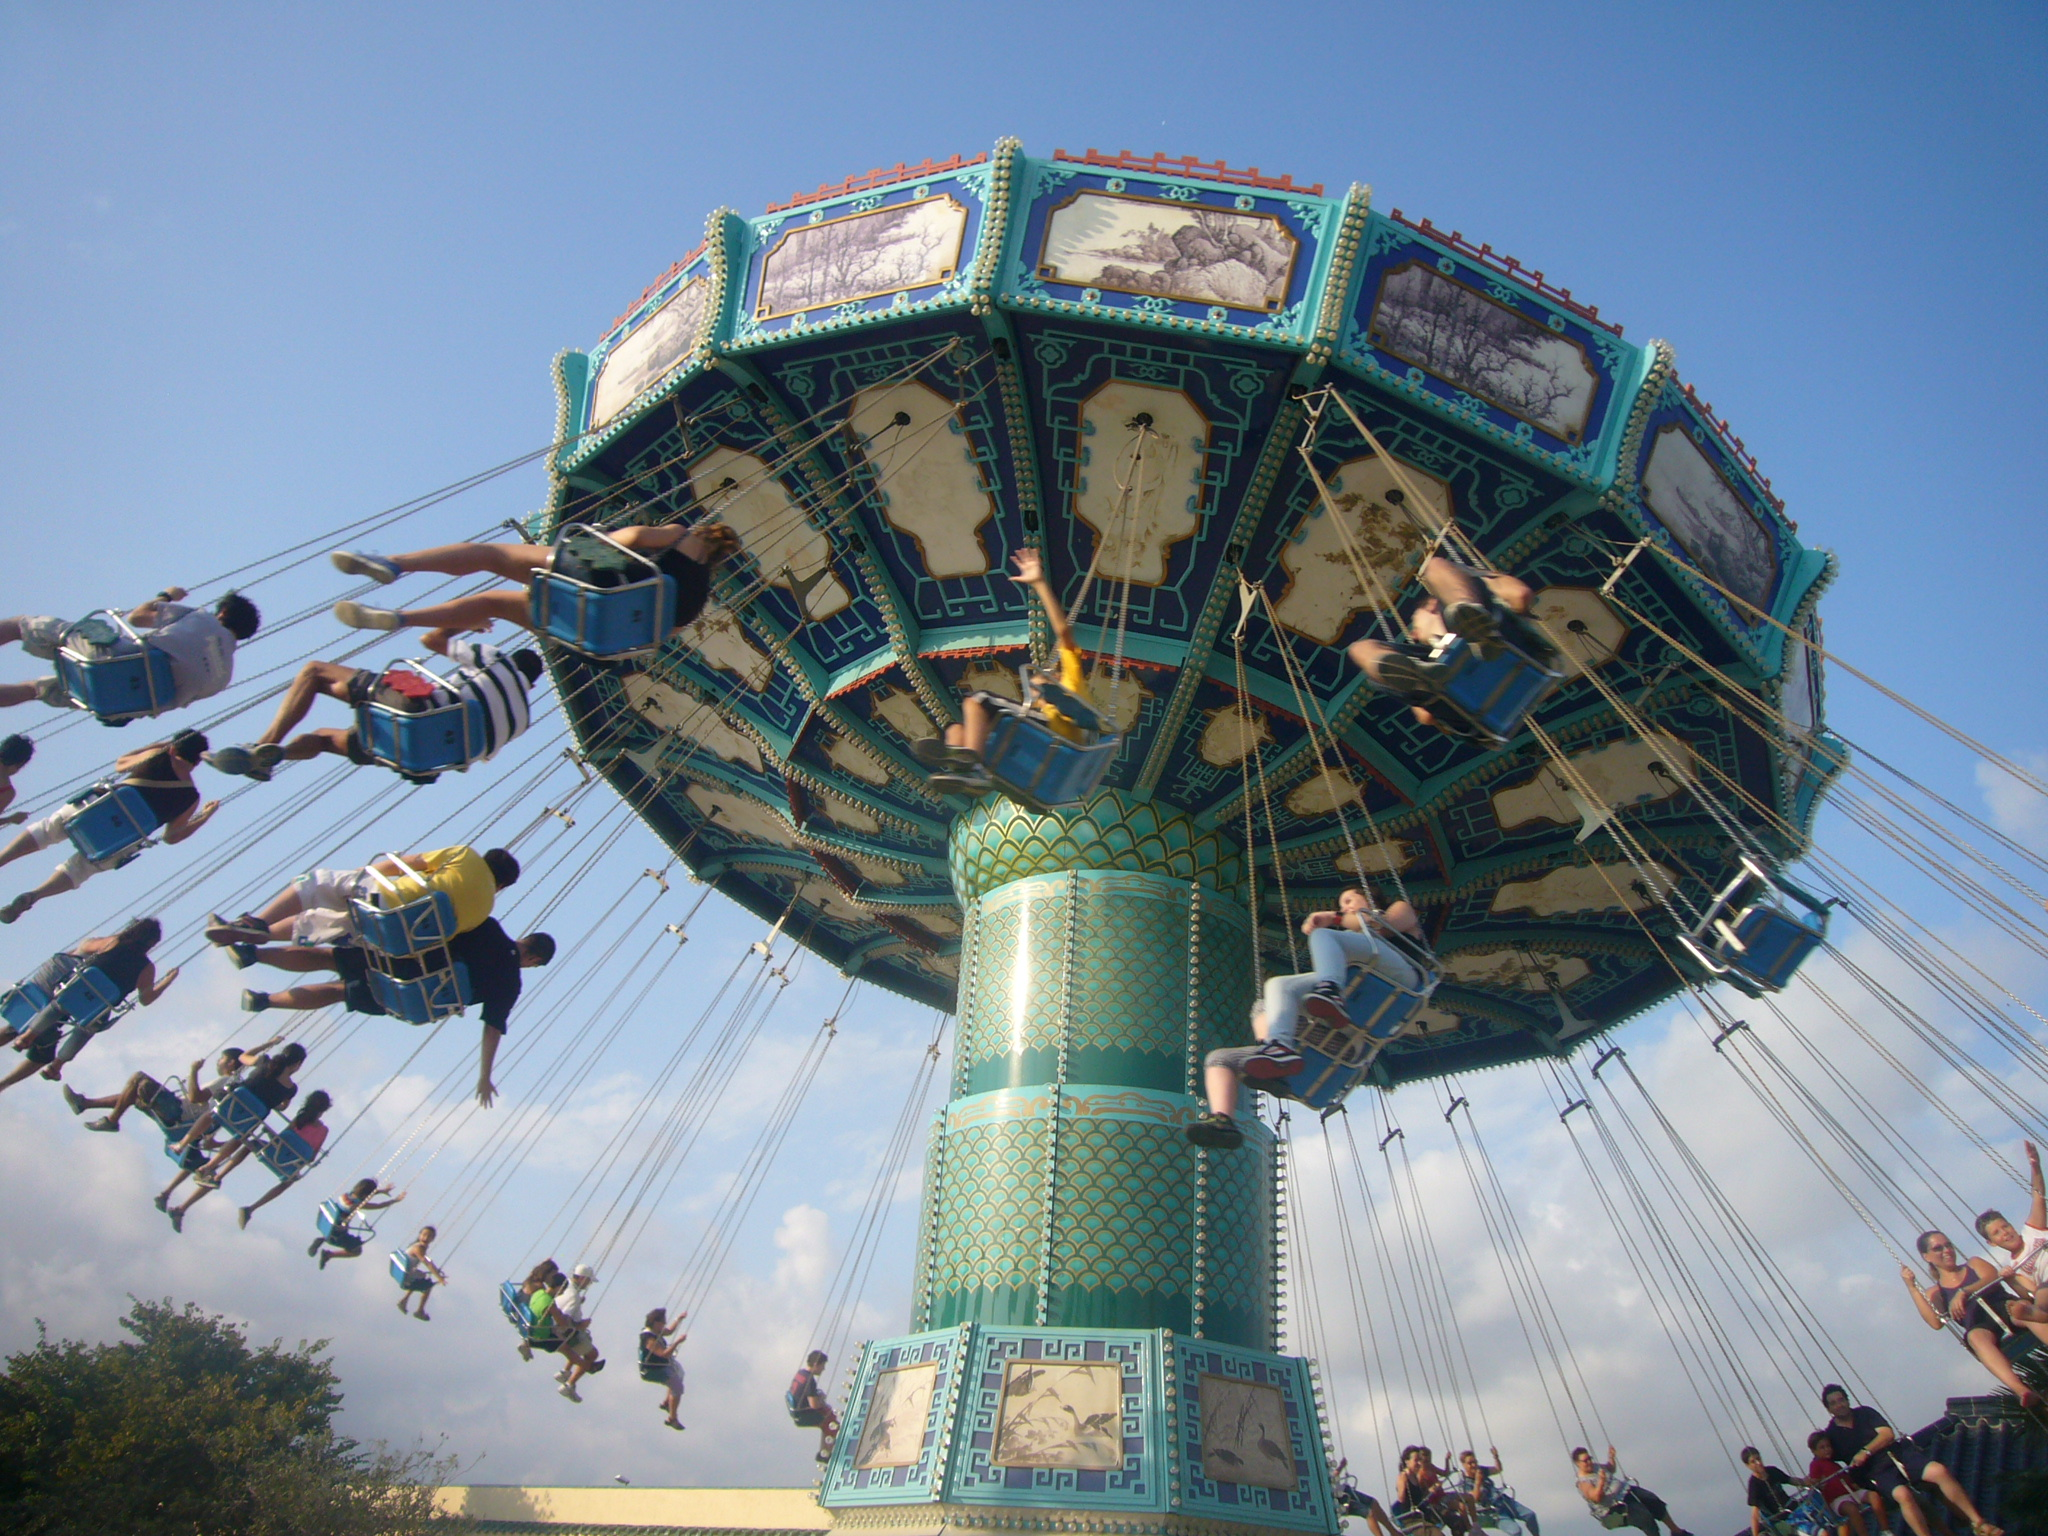 Amazing Promotion Port Aventura Methods Kvazarinfo - Billet port aventura groupon